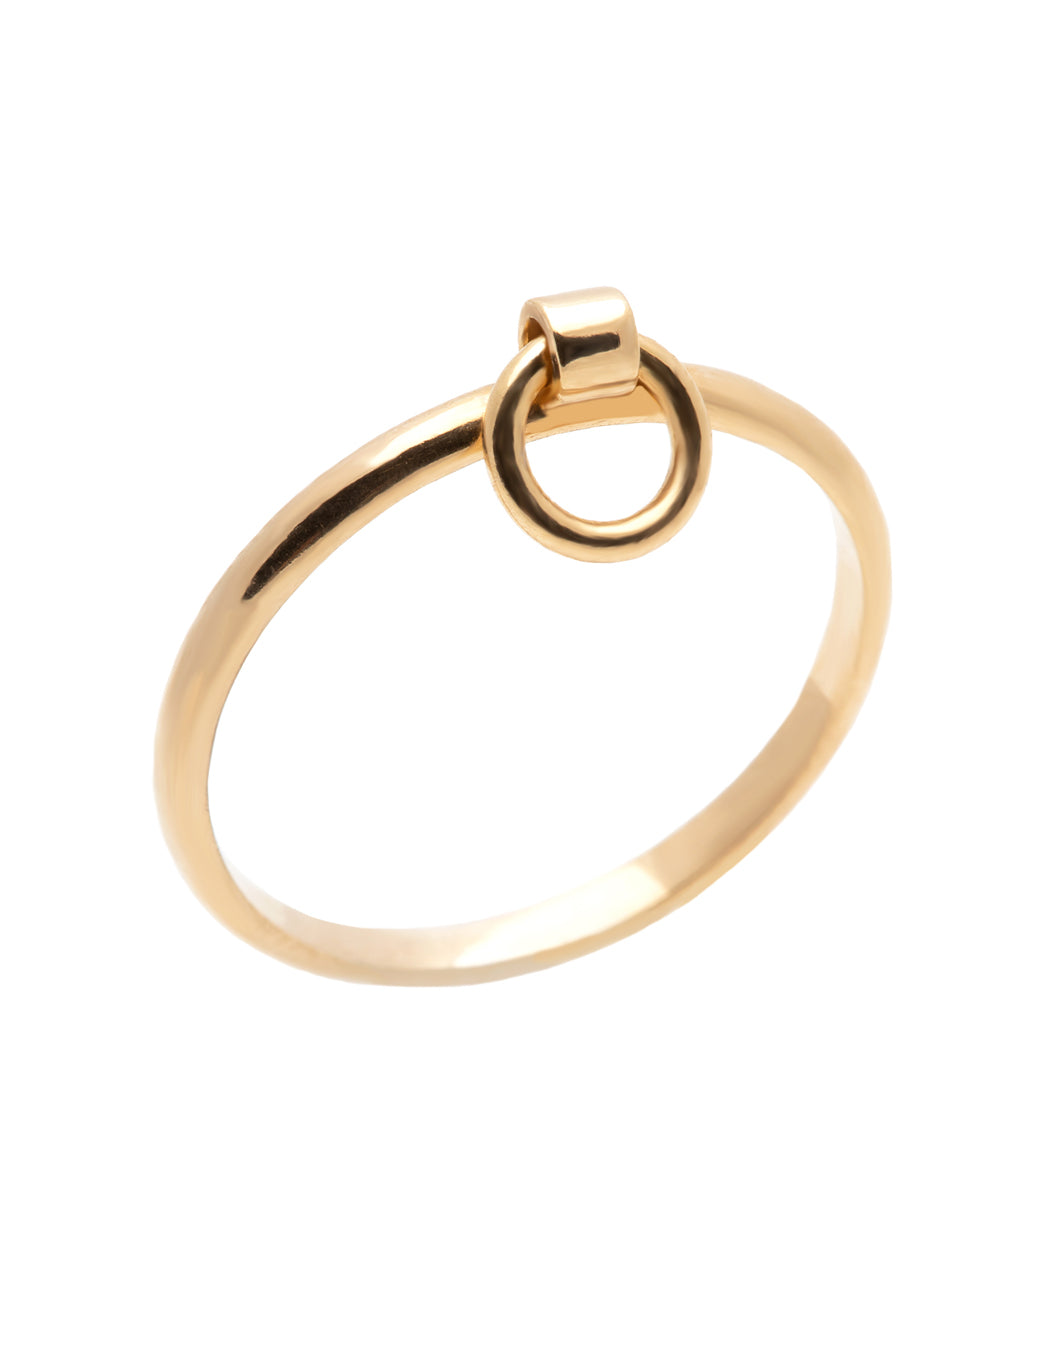 A dainty 14k yellow gold ring, with a hanging hoop.